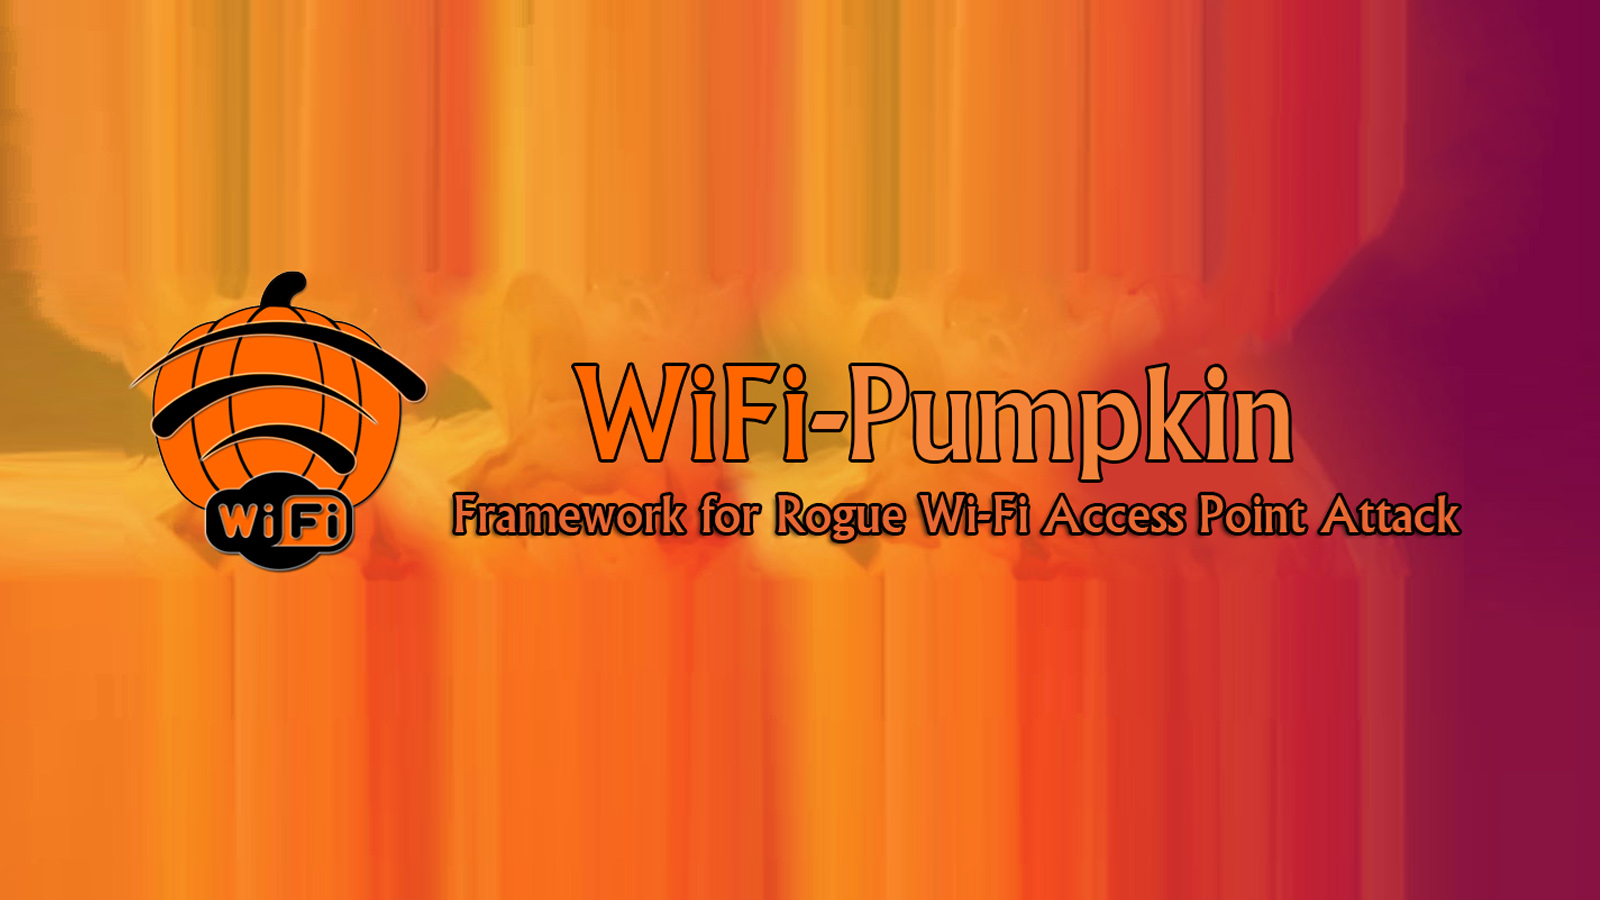 WiFi-Pumpkin - Framework for Rogue Wi-Fi Access Point Attack